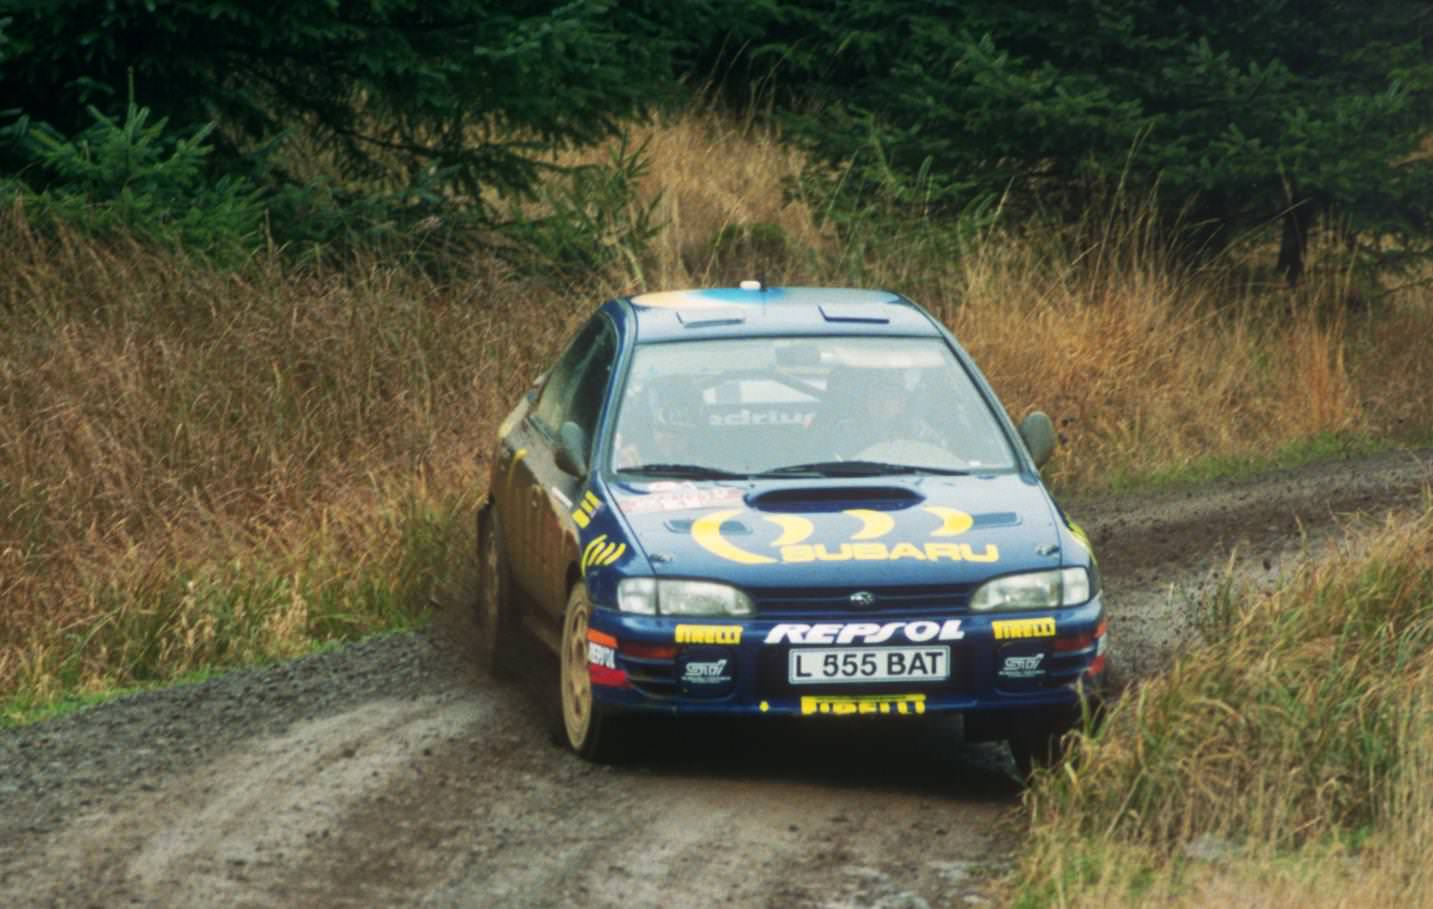 image of colin mcraes rally car during the 1995 world rally championship